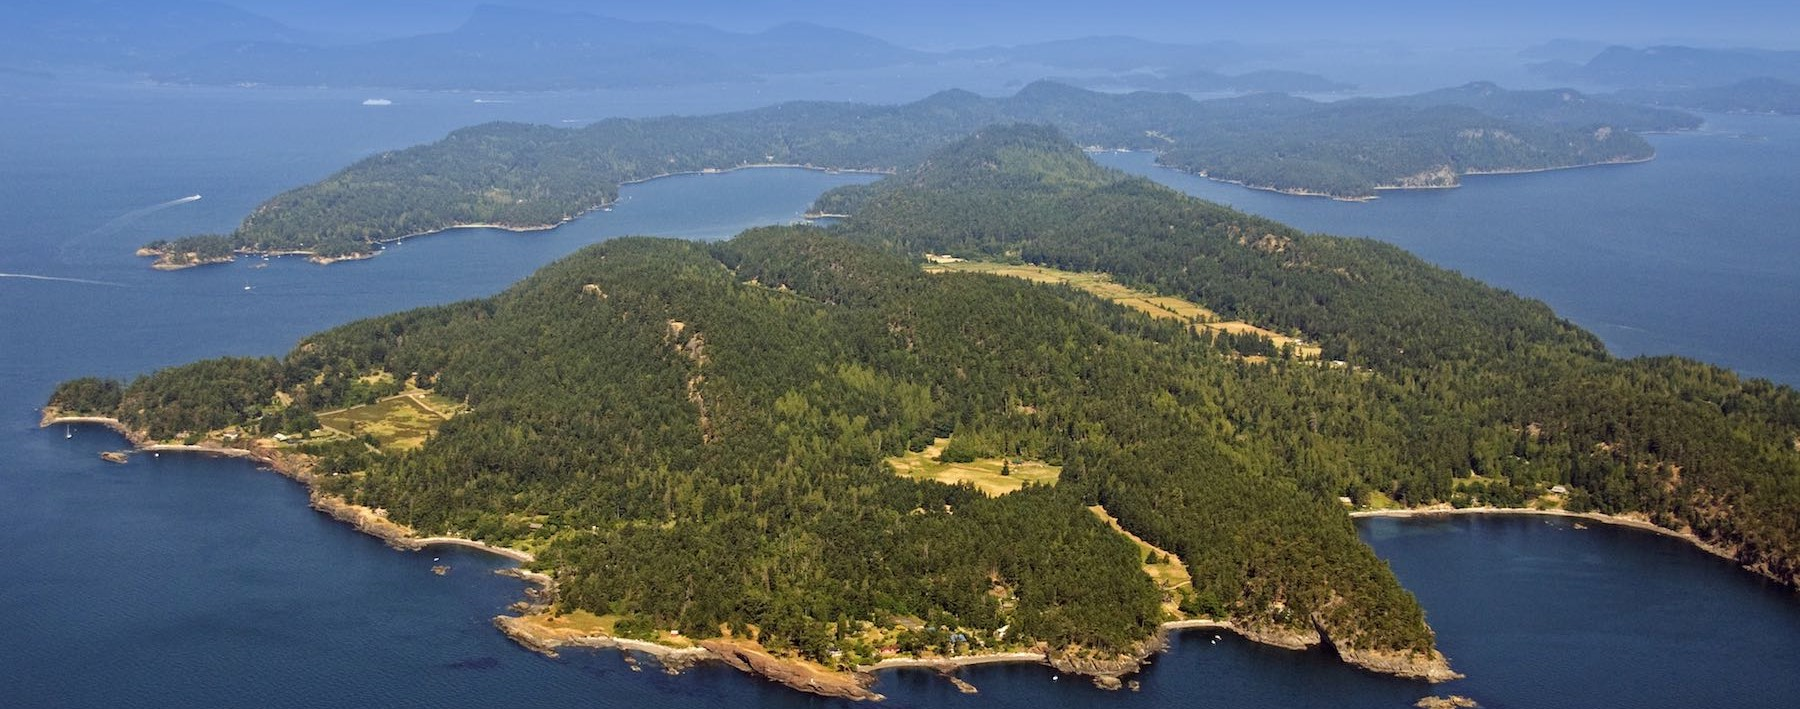 Pender Islands aerial view